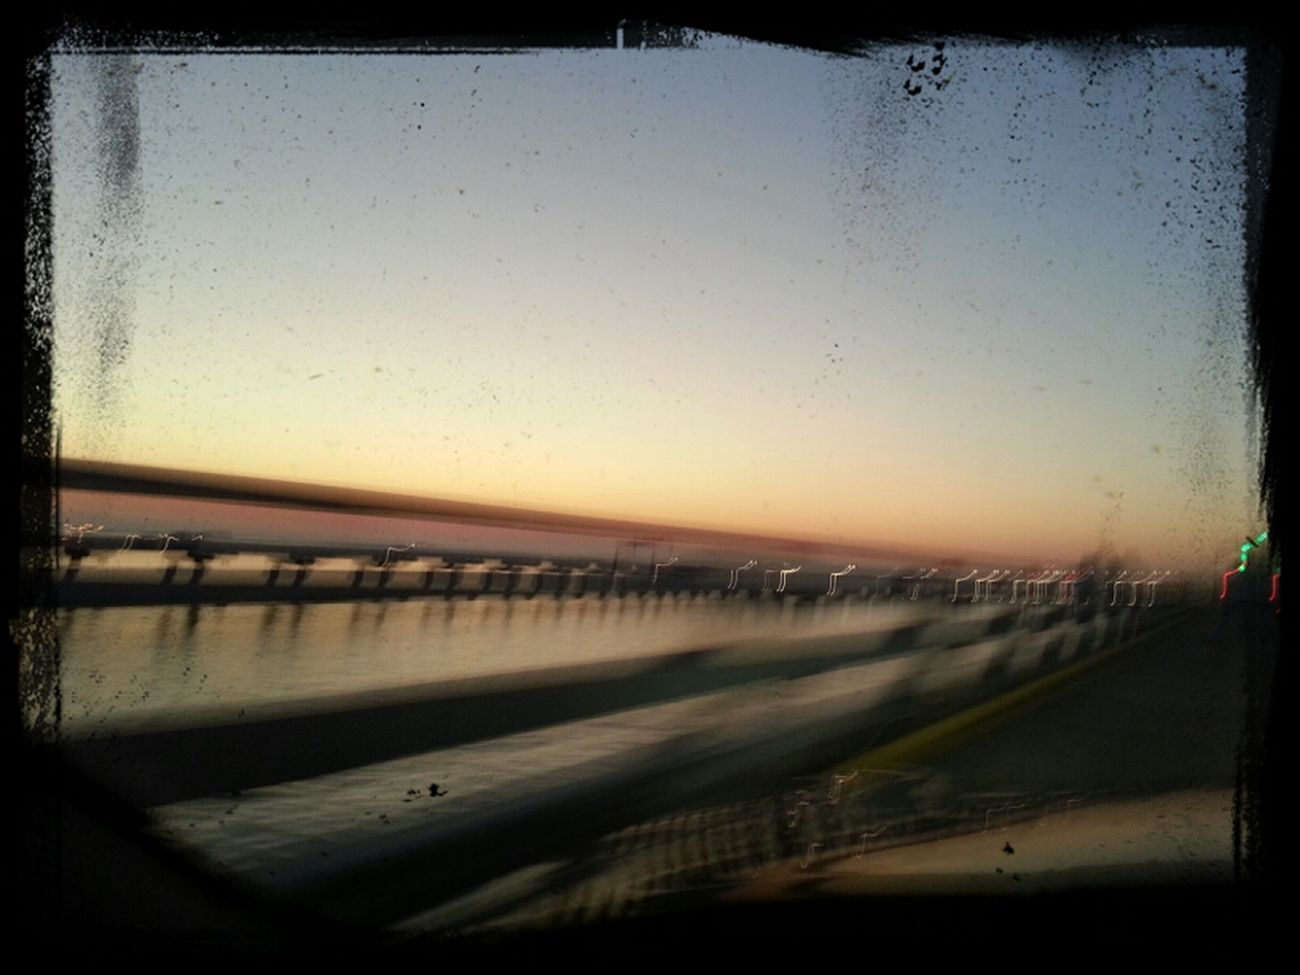 Kinda blury but, Bay Bridge